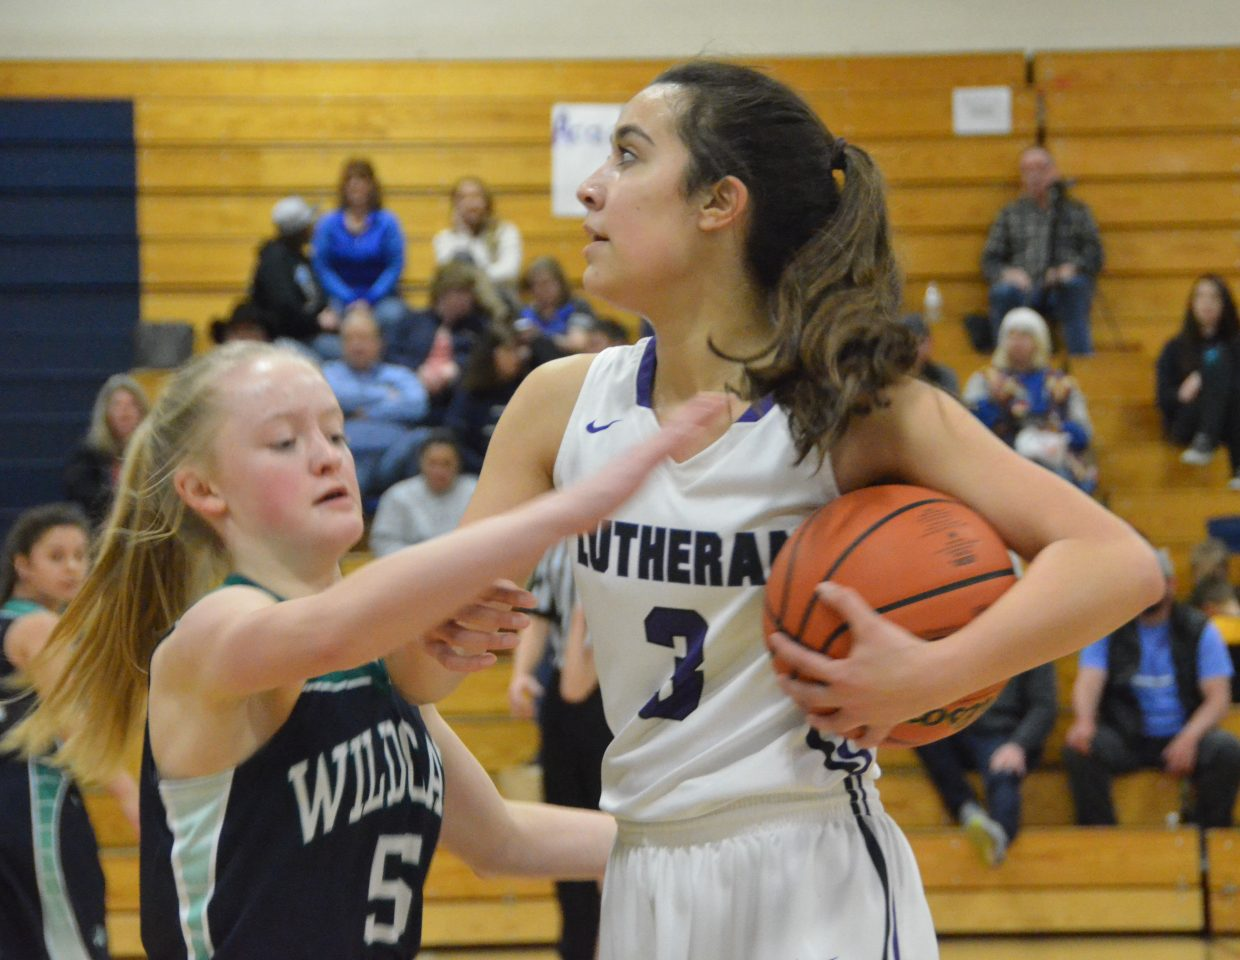 Lutheran's Isabel Dycus holds onto the ball and swats away a steal attempt by The Academy's Jenna Beagle late in the Round of 32 at Moffat County High School. The Lutheran Lions beat the Wildcats 56-39 and will face Moffat County Saturday in the Sweet 16.